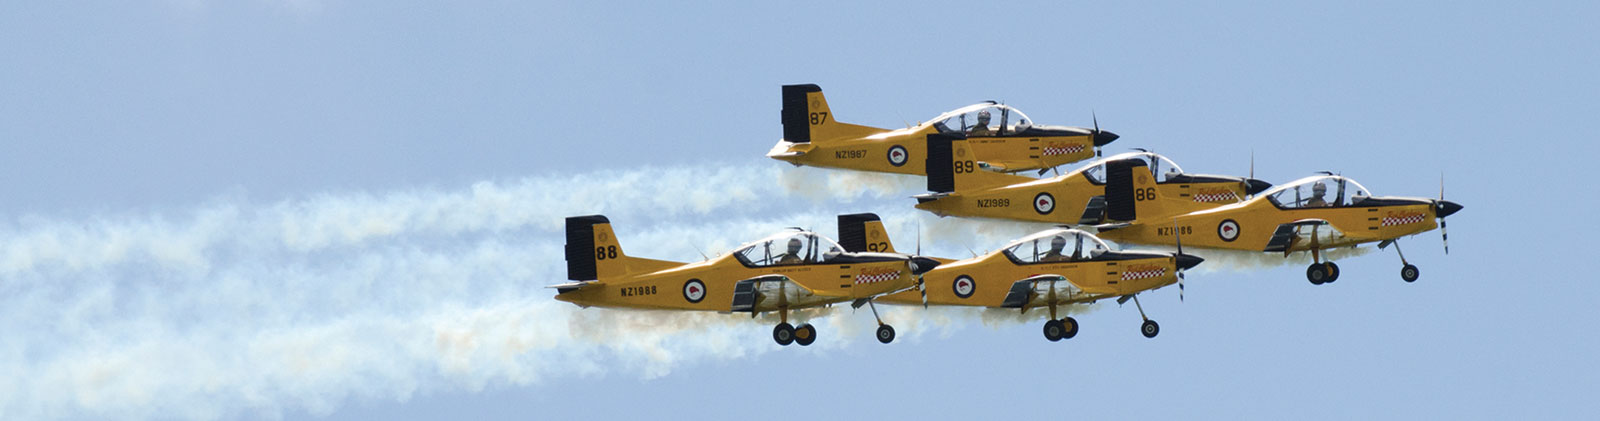 transport to omaka air show